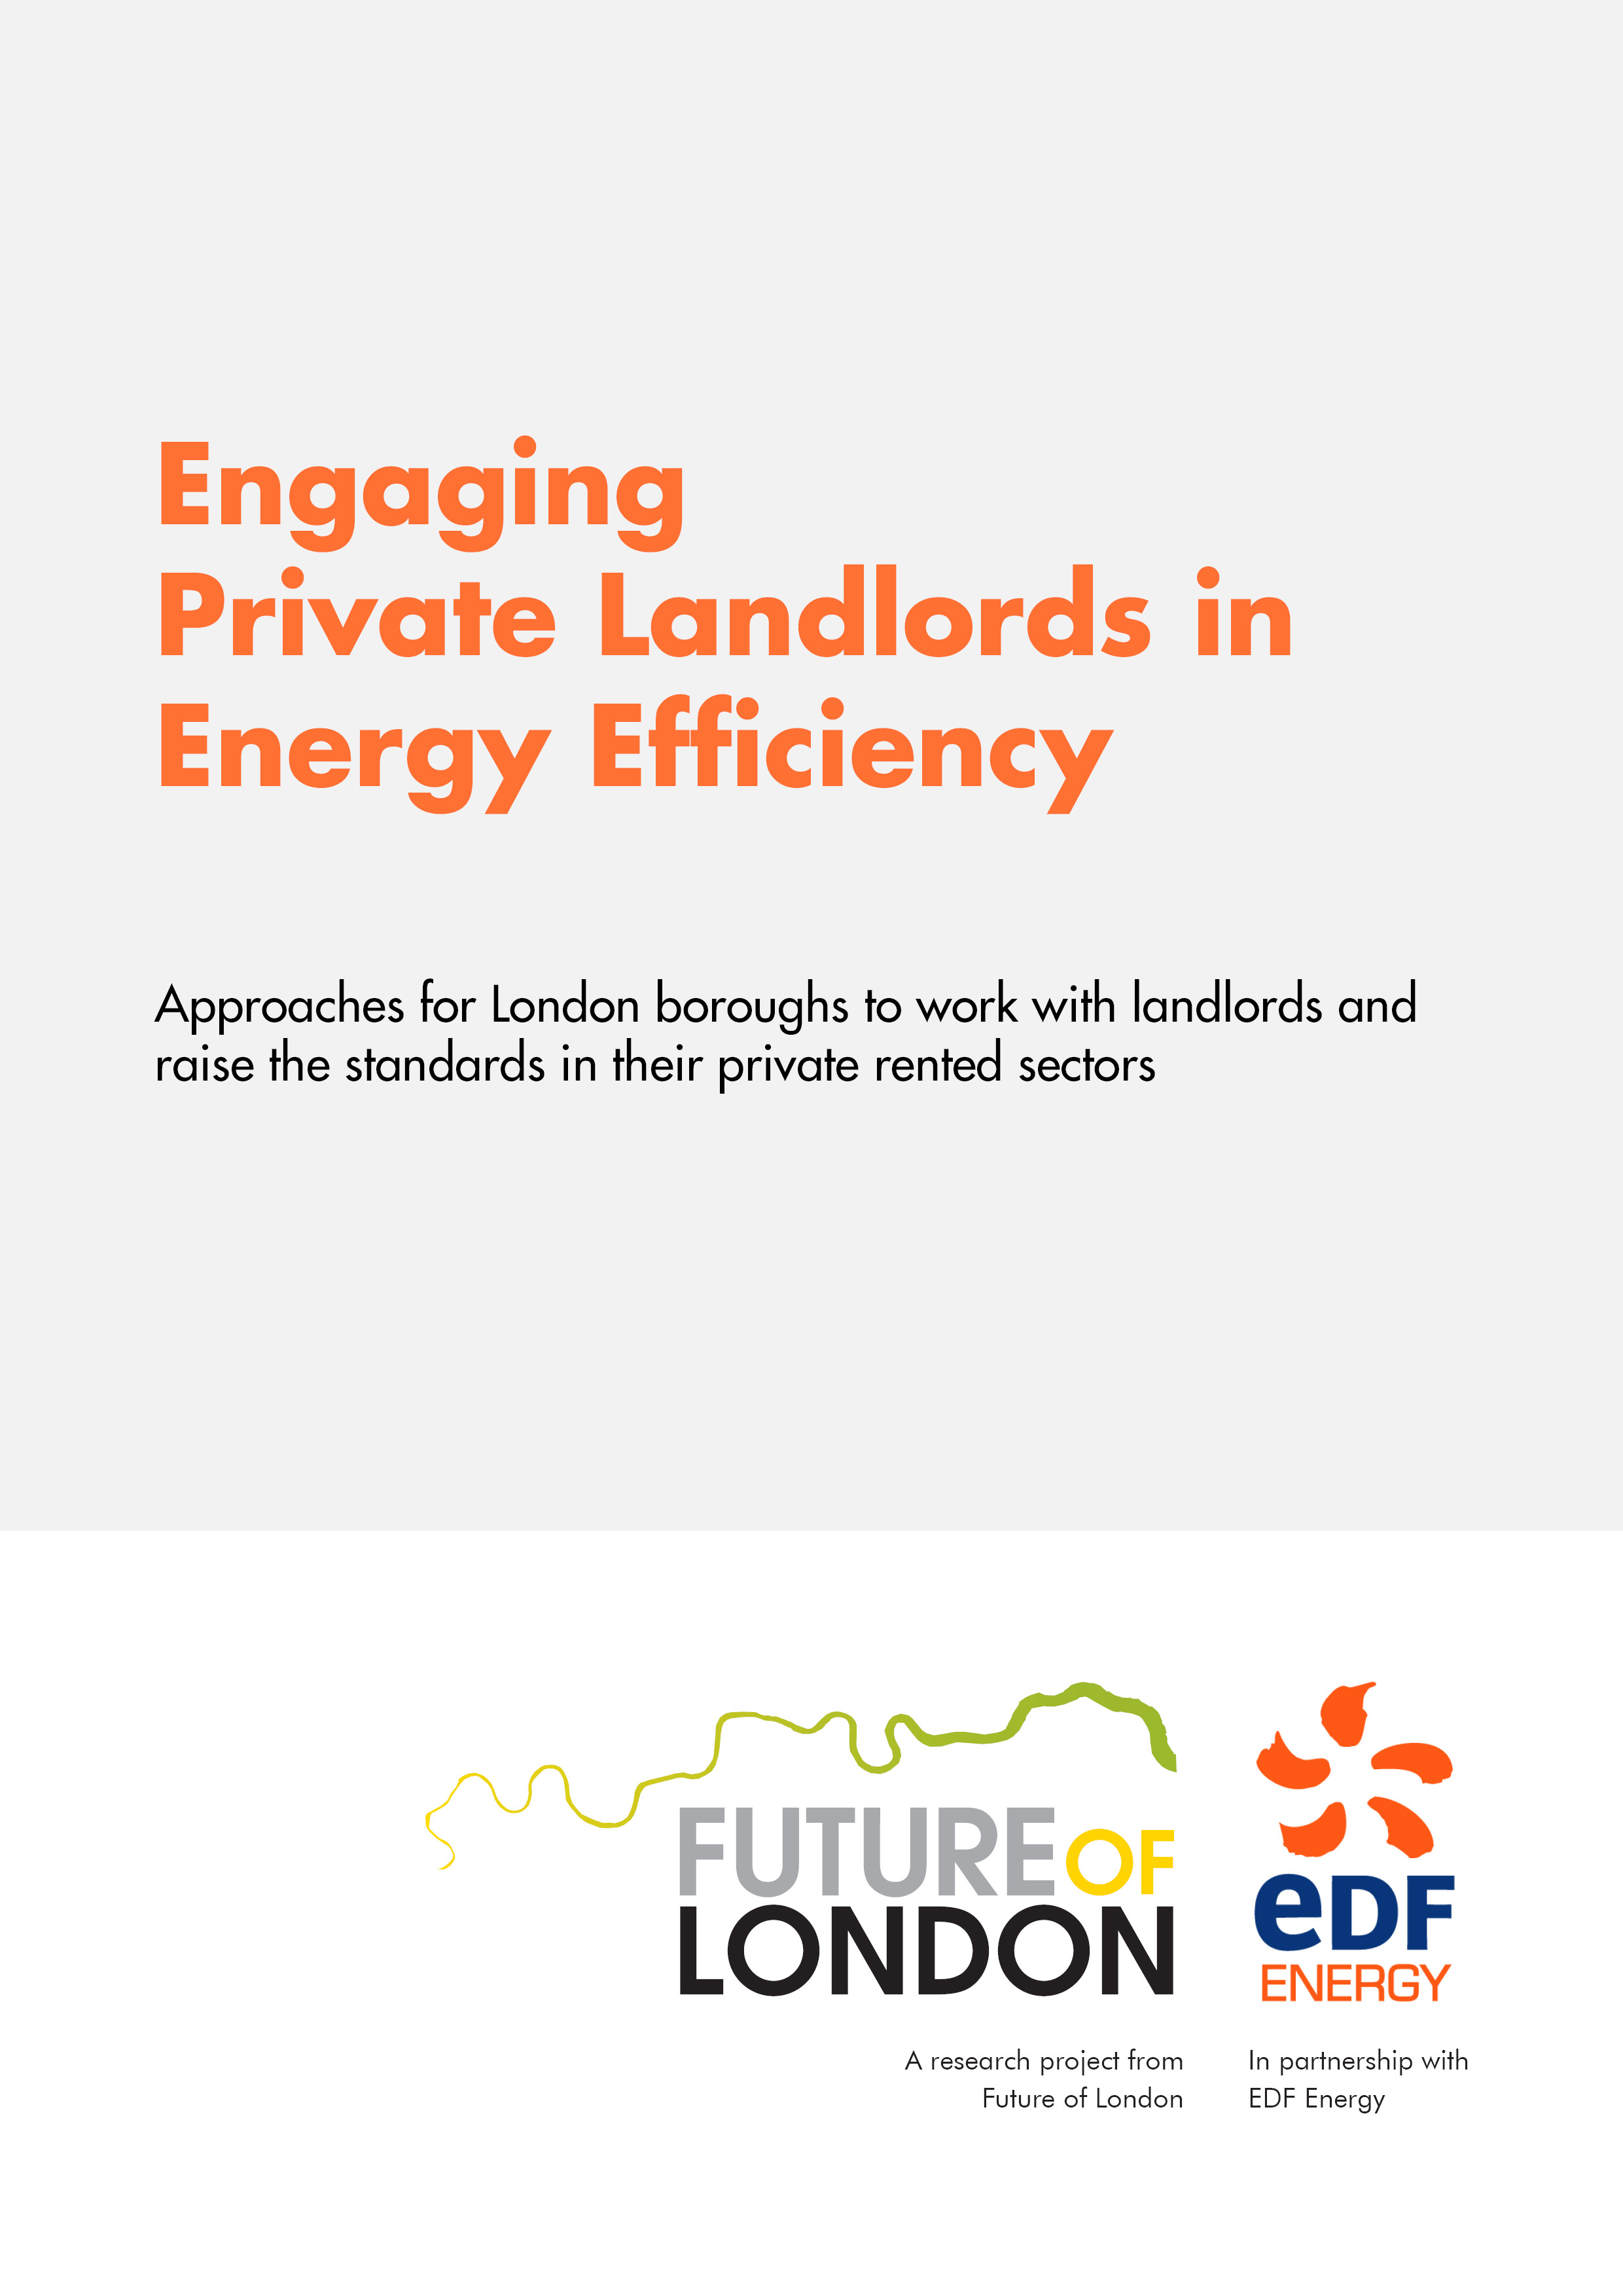 Press release: Engaging Private Landlords in Energy Efficiency